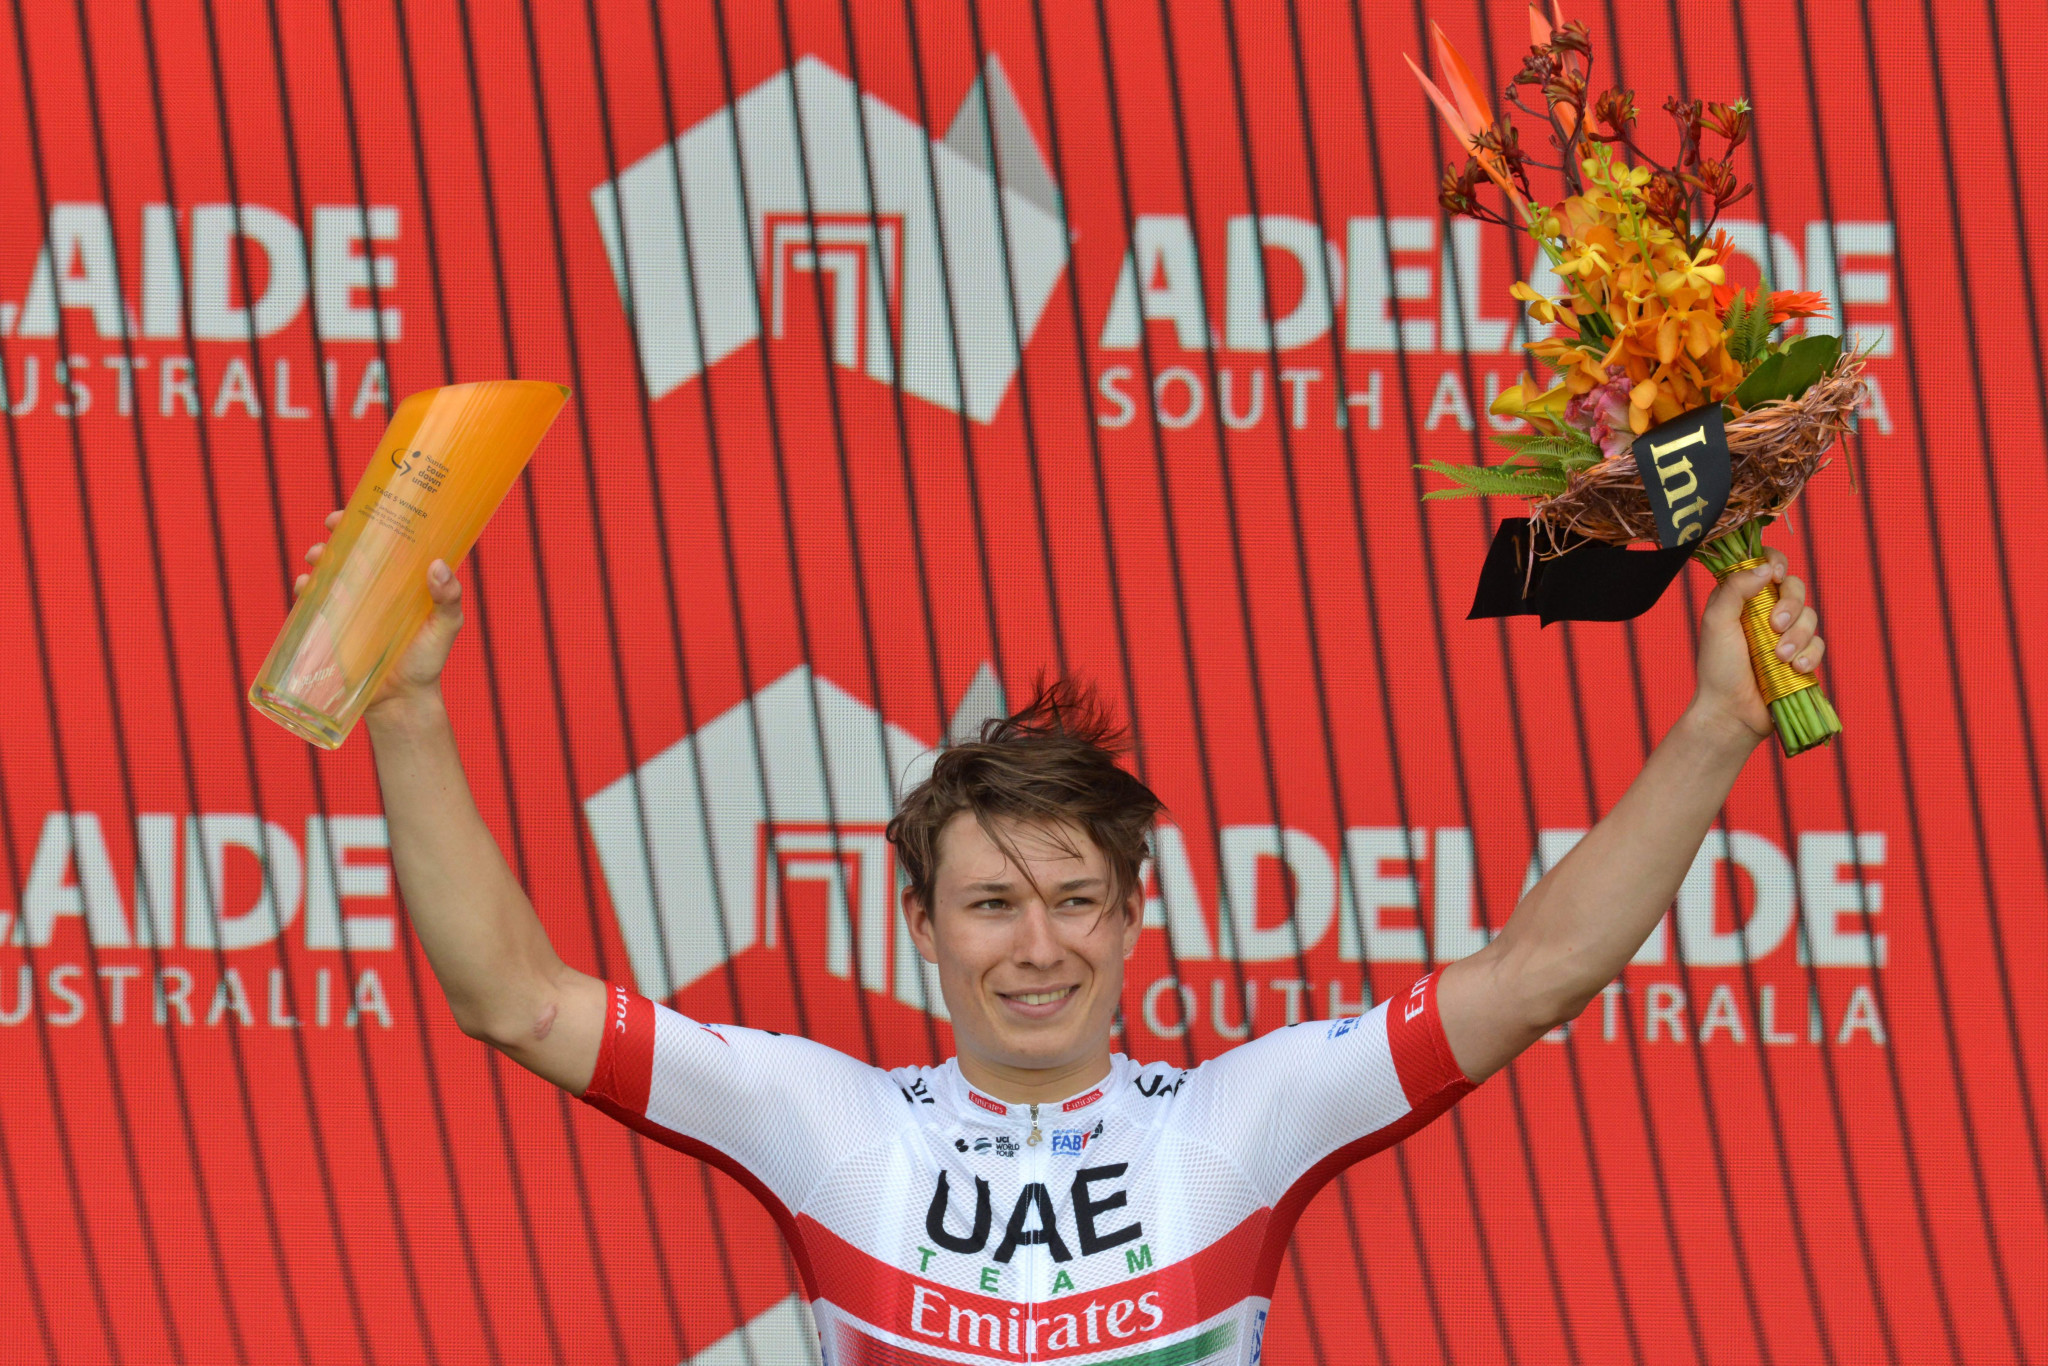 Jasper Philipsen was awarded the stage victory after Caleb Ewan was relegated ©Getty Images